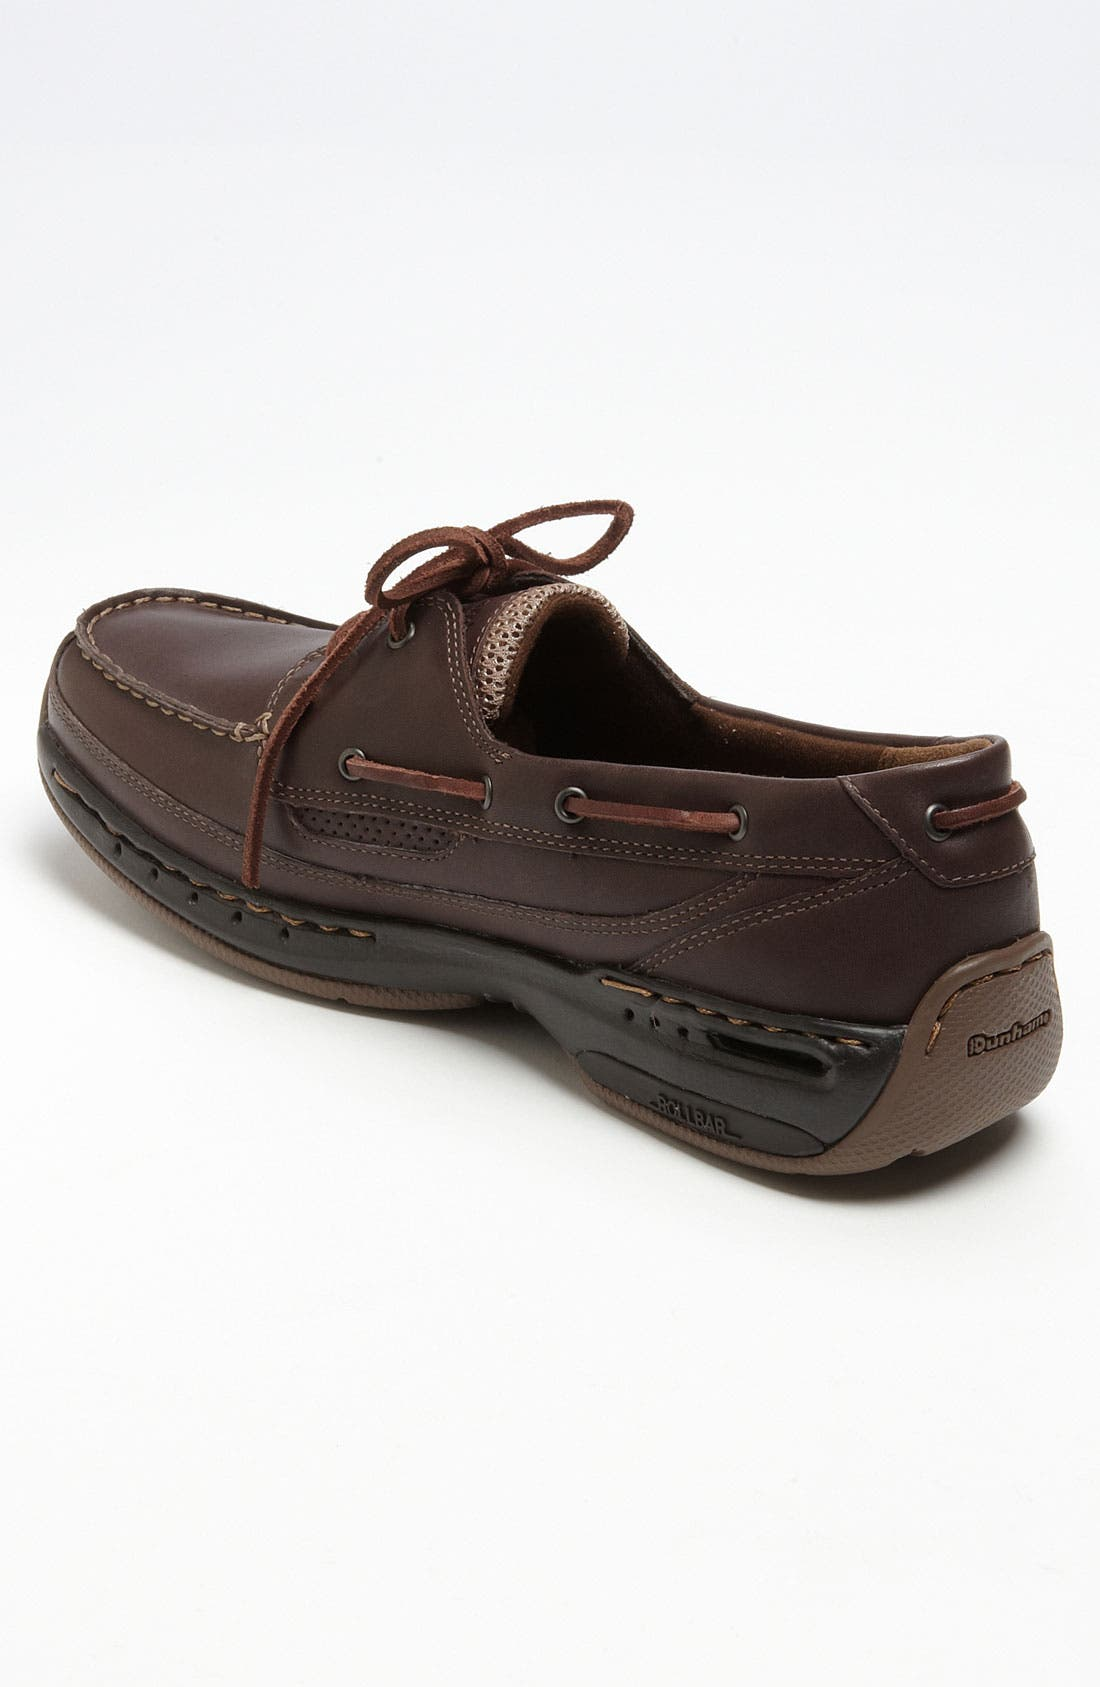 Alternate Image 2  - Dunham 'Shoreline' Boat Shoe (Online Only)